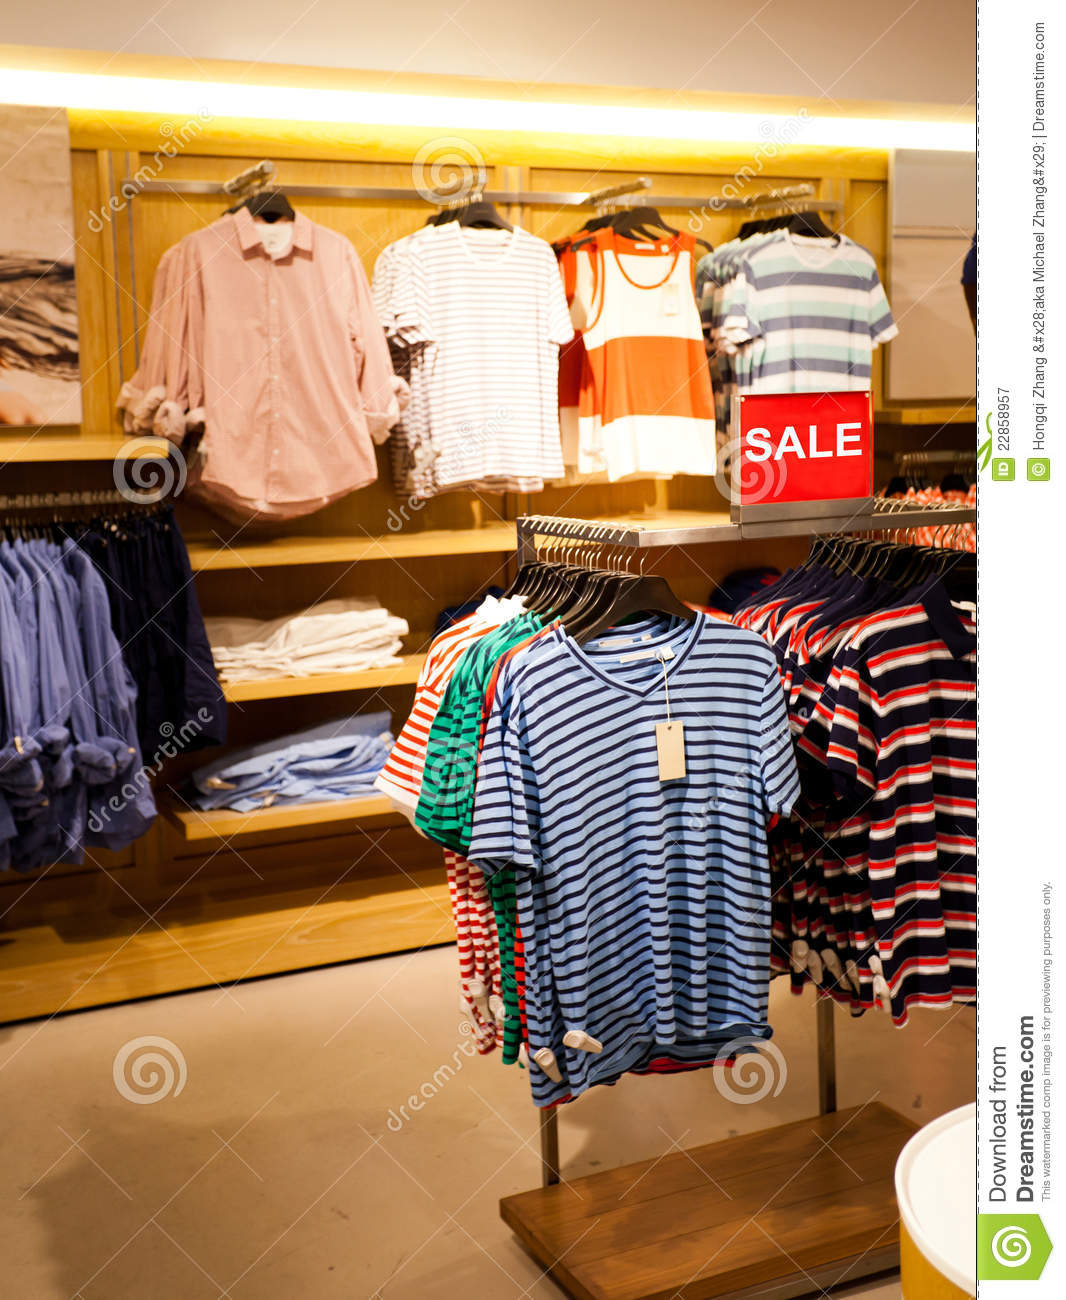 Men's Clothing Store Royalty Free Stock Photography - Image: 22858957